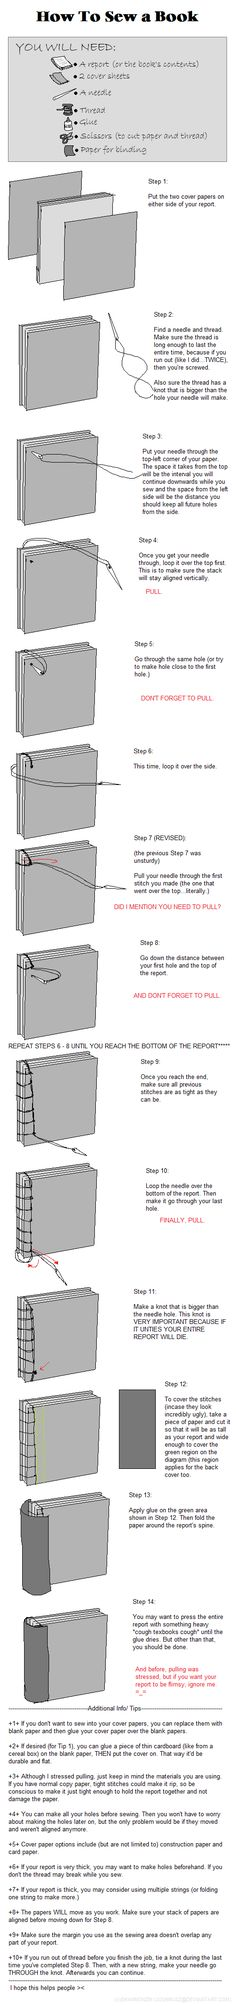 How to Sew a Book + Report by Jounin-SZ.deviantart.com on @deviantART